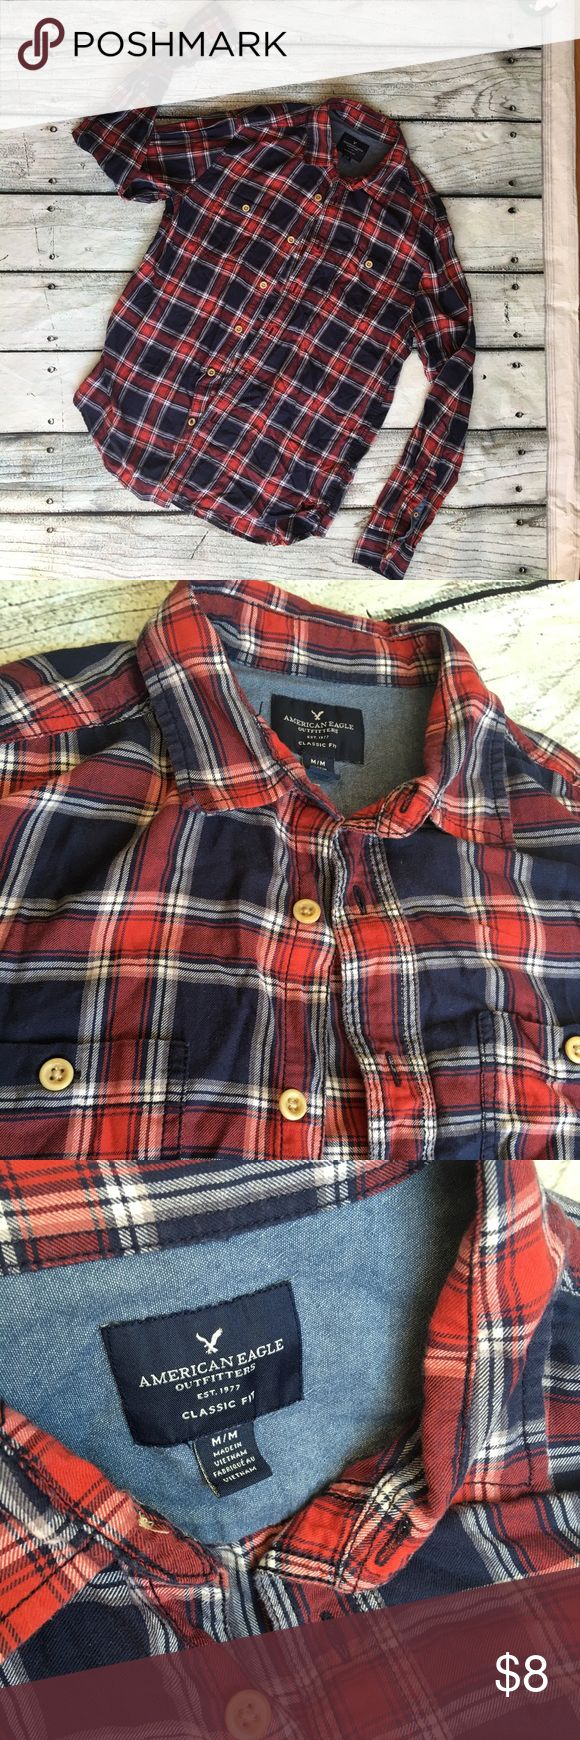 American Eagle men's plaid shirt classic fit M Preowned American Eagle men's classic fit plaid shirt blue and red long sleeve sizes medium great condition American Eagle Outfitters Shirts Casual Button Down Shirts